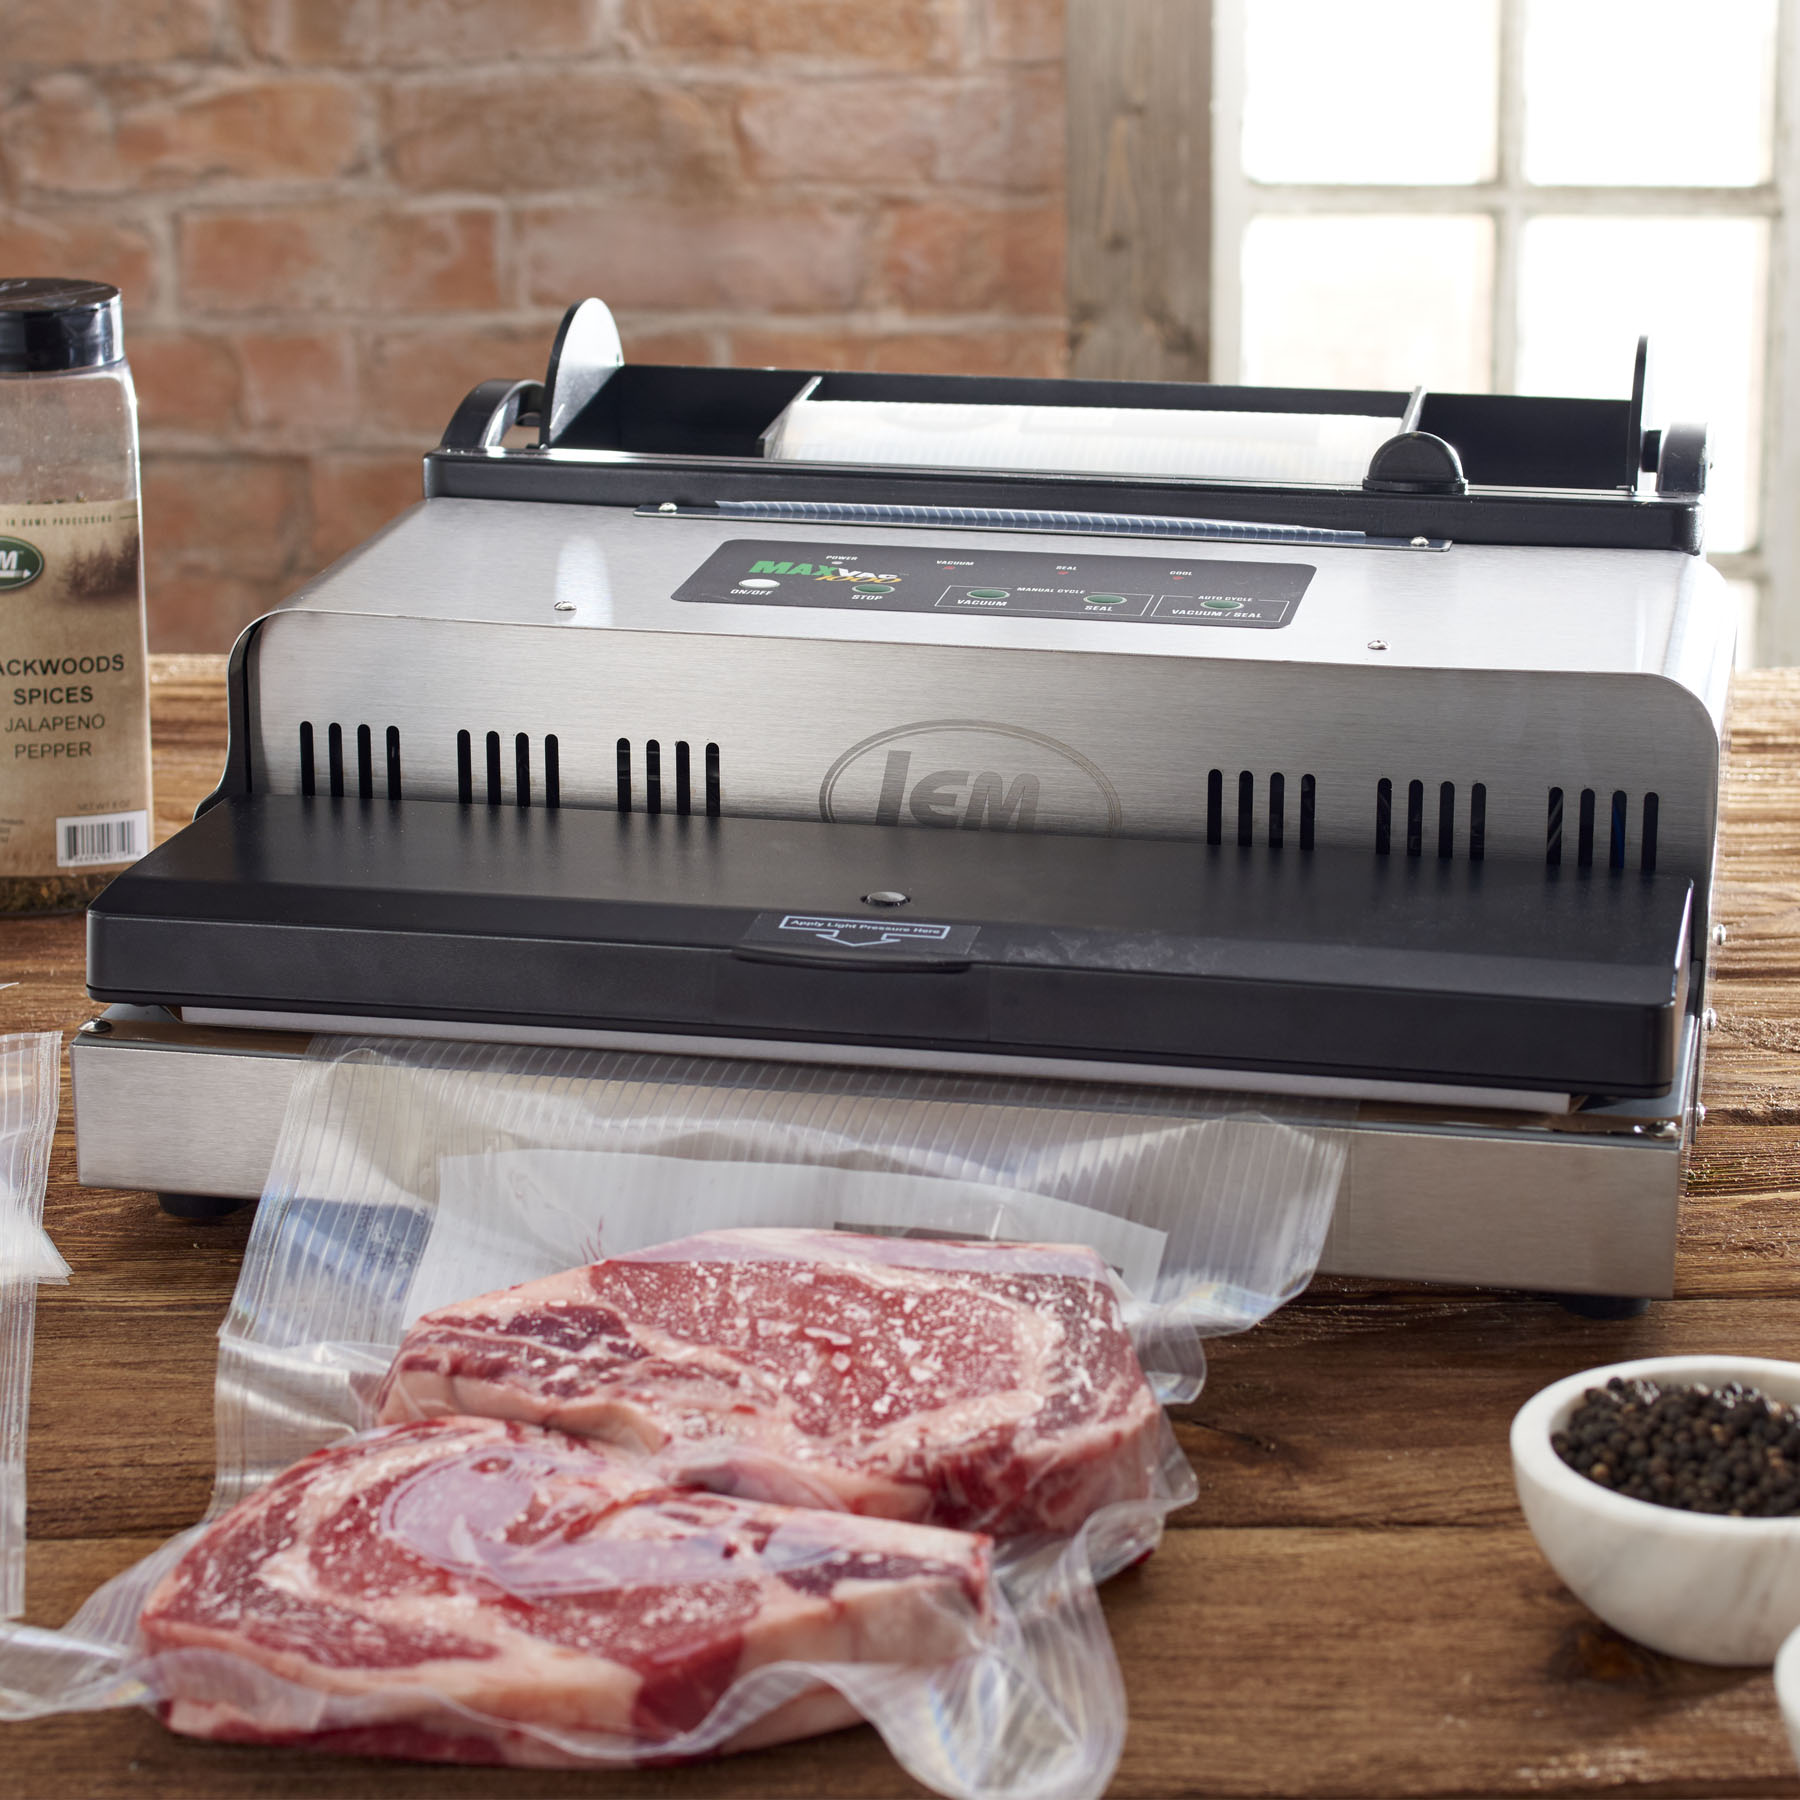 The Ins and Outs of Vacuum Sealing